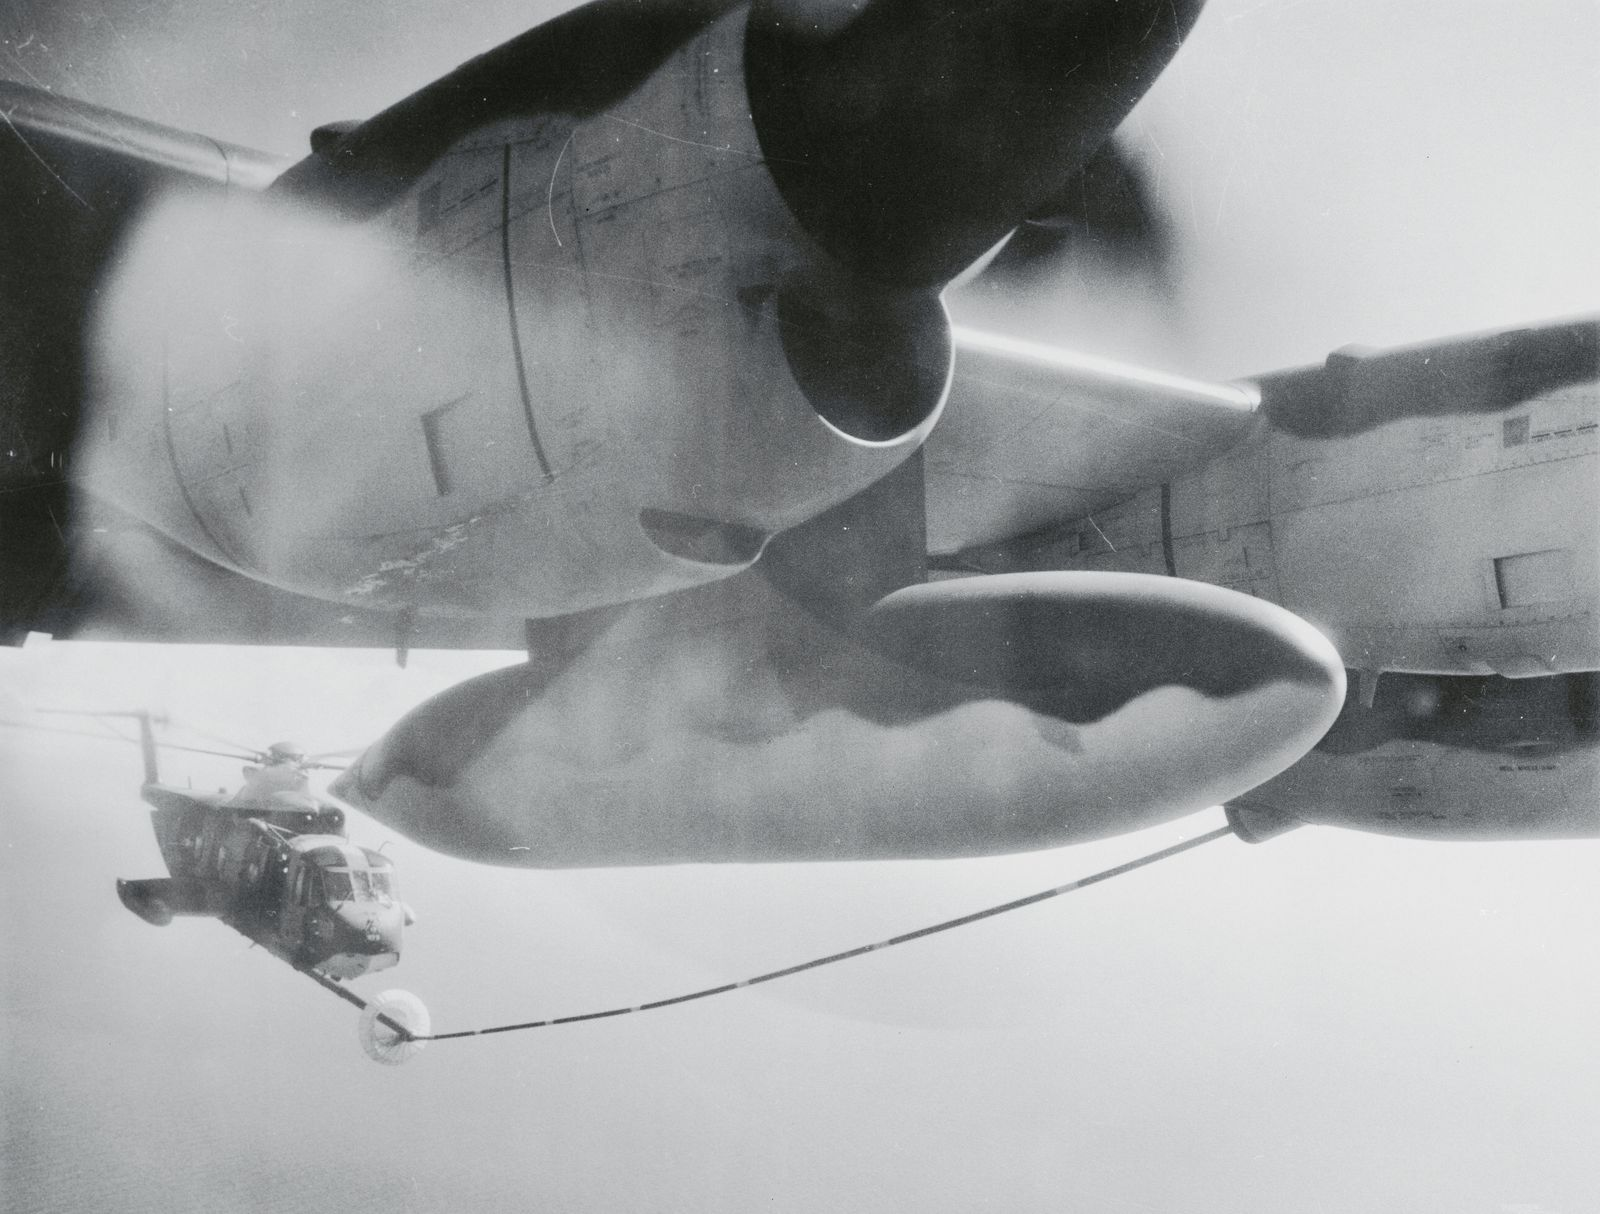 Airliner Refuelling a Helicopter